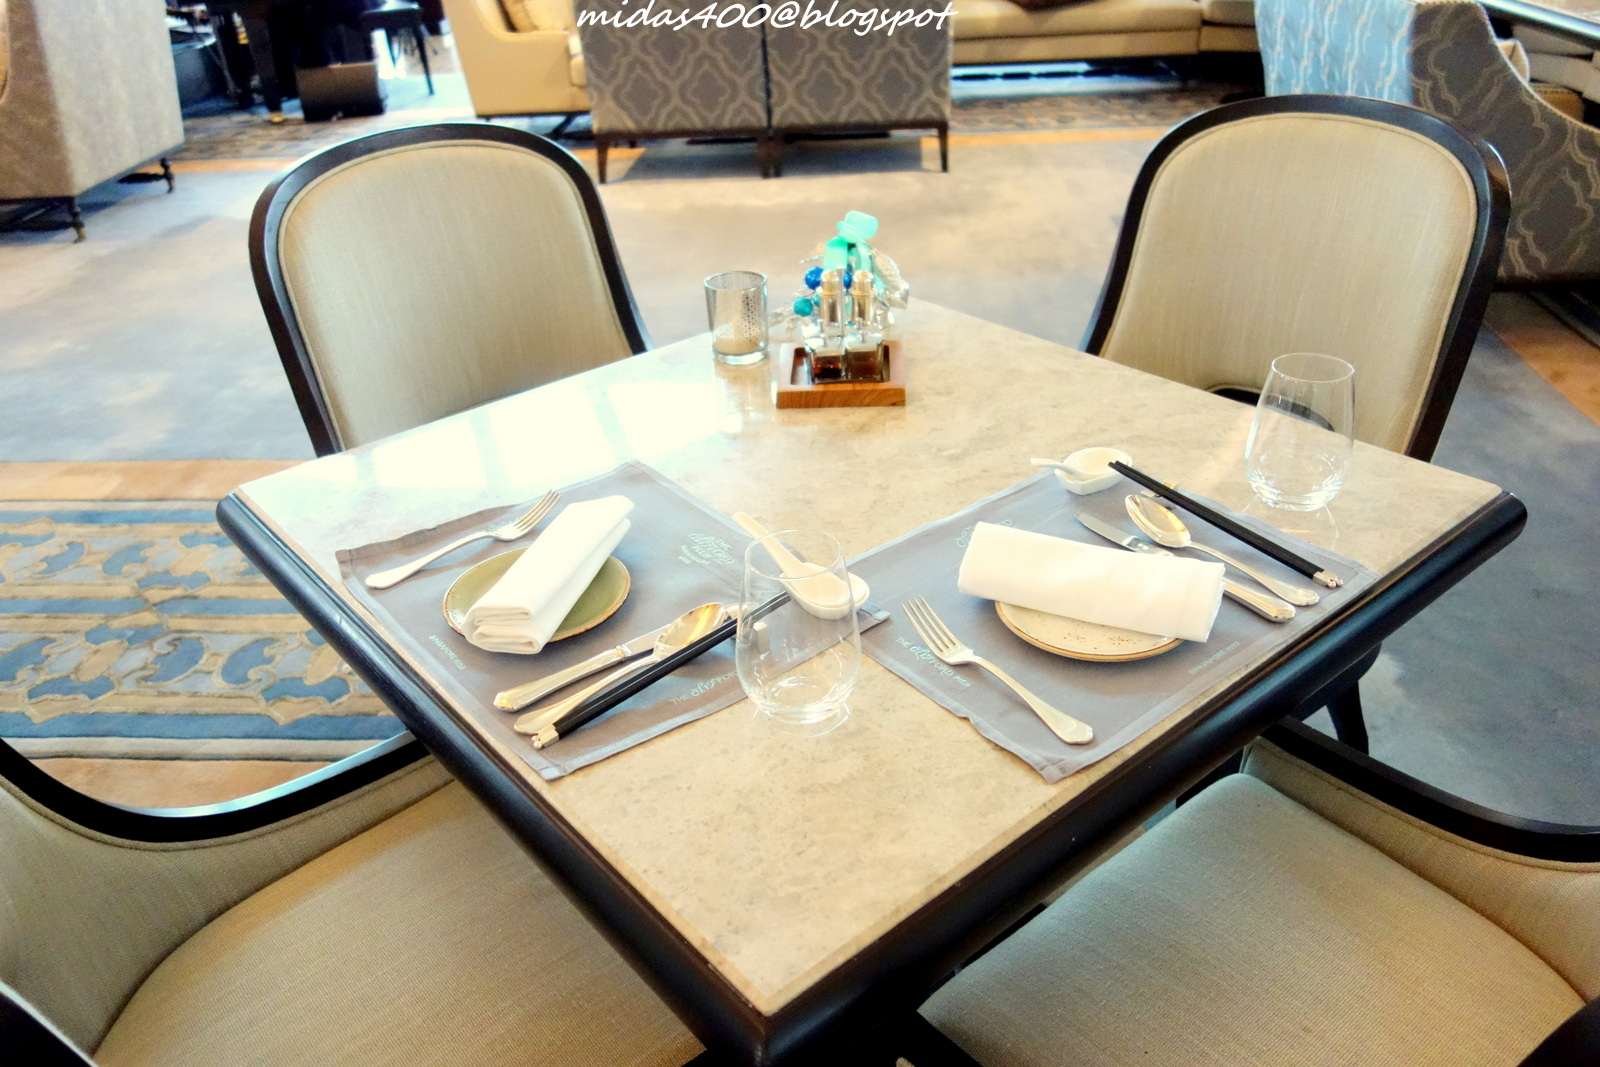 Simple restaurant table setting - At Exactly 3 30pm The Restaurant Opens For Afternoon Tea And We Were Ushered Swiftly To Our Seats Check Out The Simple And Chic Table Settings And